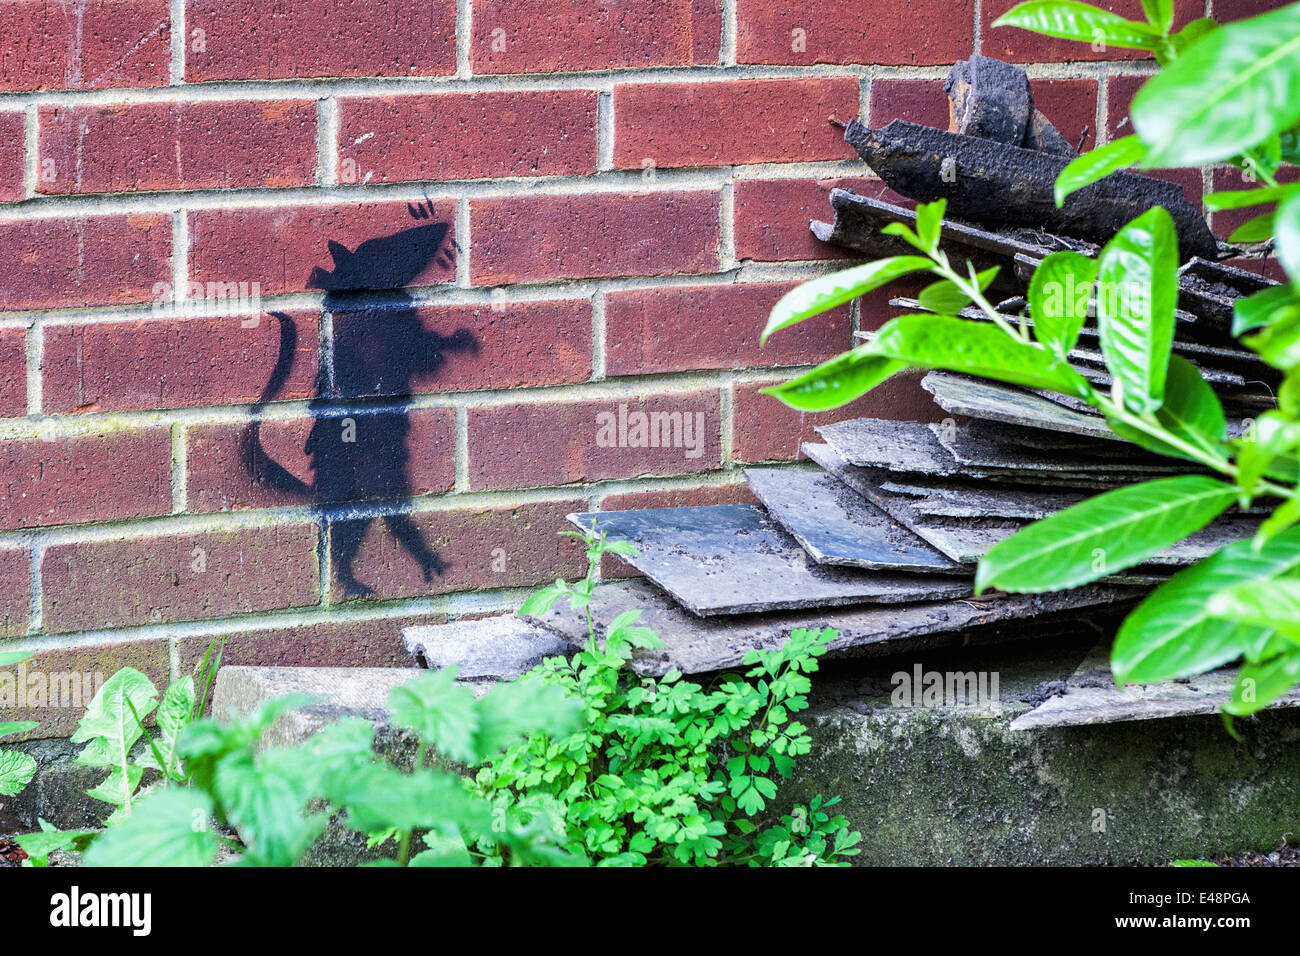 Street art rat - rat stencil on a brick wall of the closed Mereway Day Centre - Stock Image